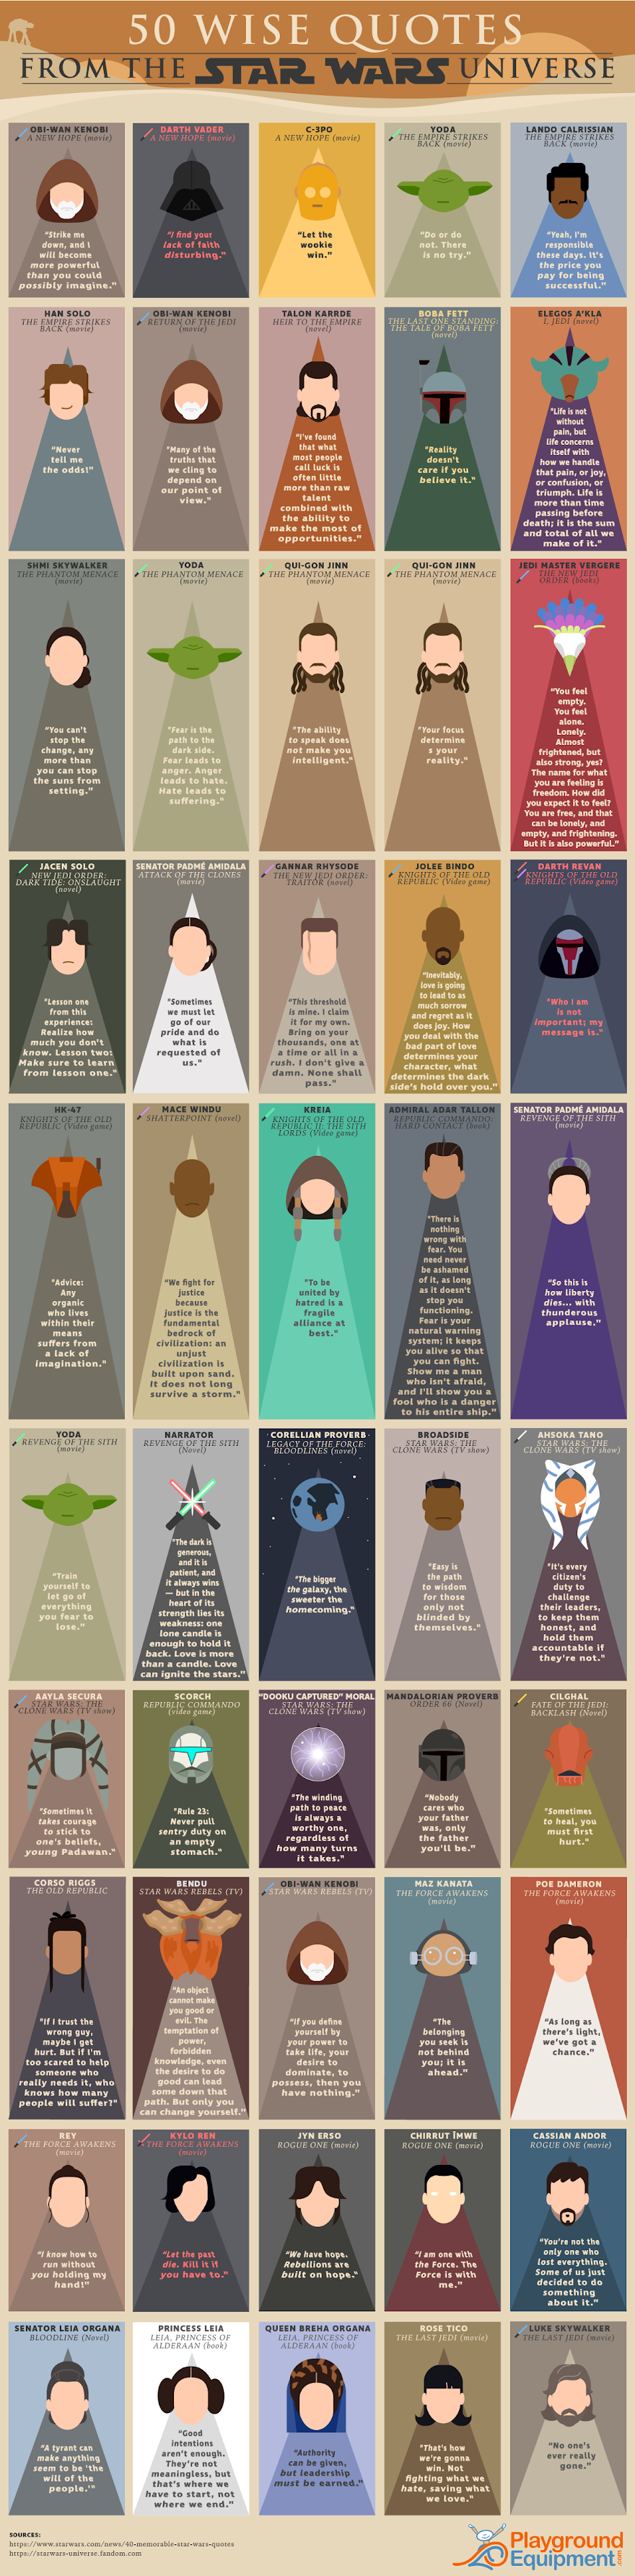 50 Wise Quotes from the Star Wars Universe #infographic #Star Wars #Unforgettable Characters #infographics #Wise Quotes #Infographic